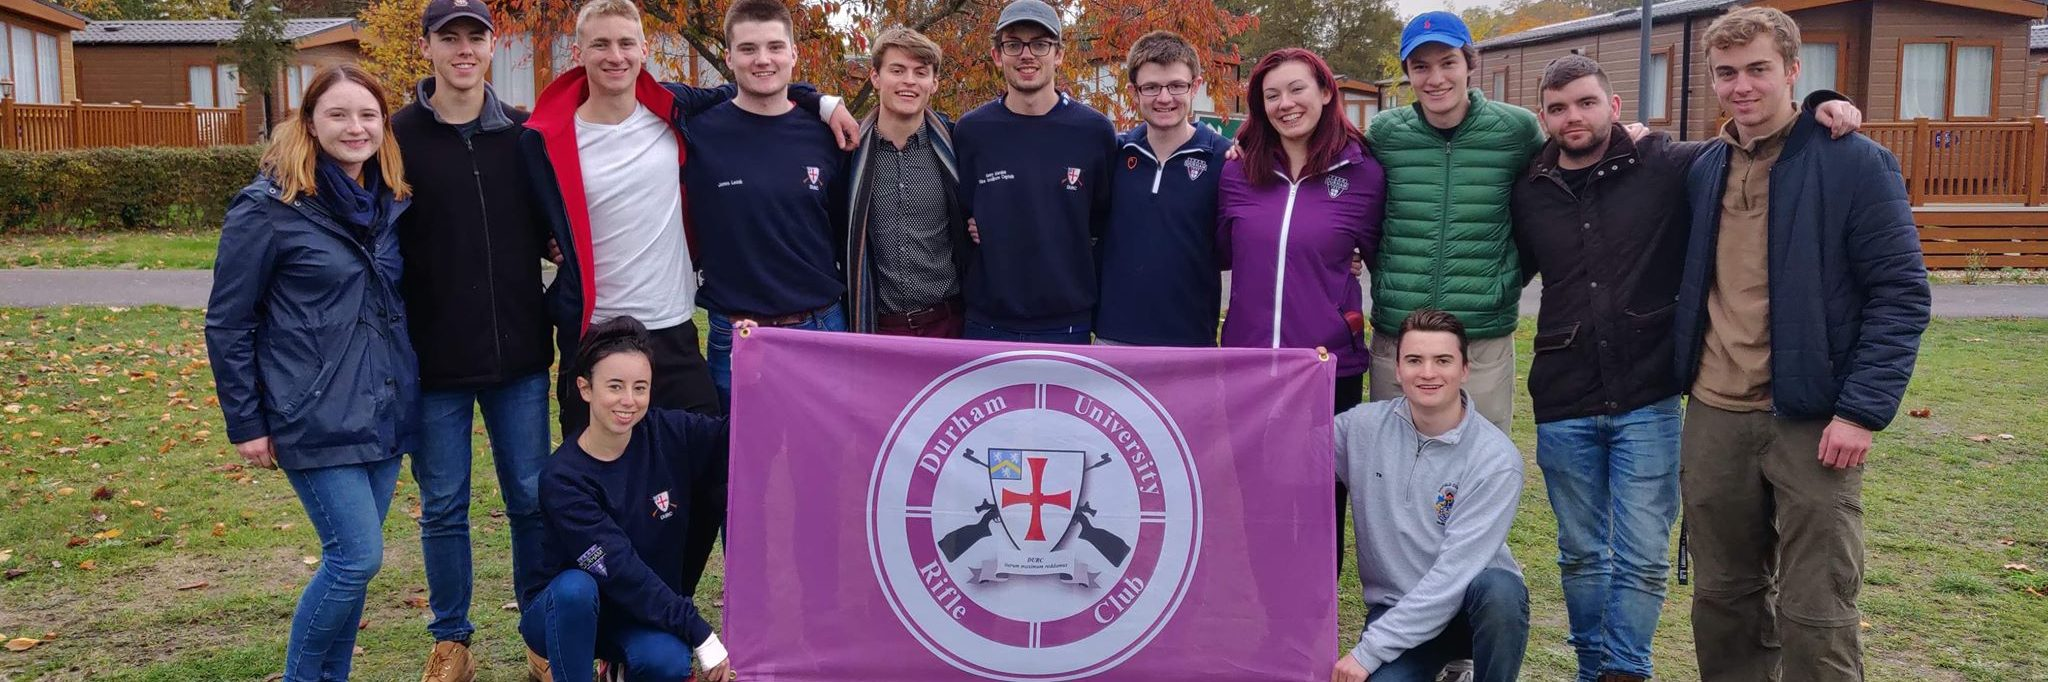 Durham University Rifle Club